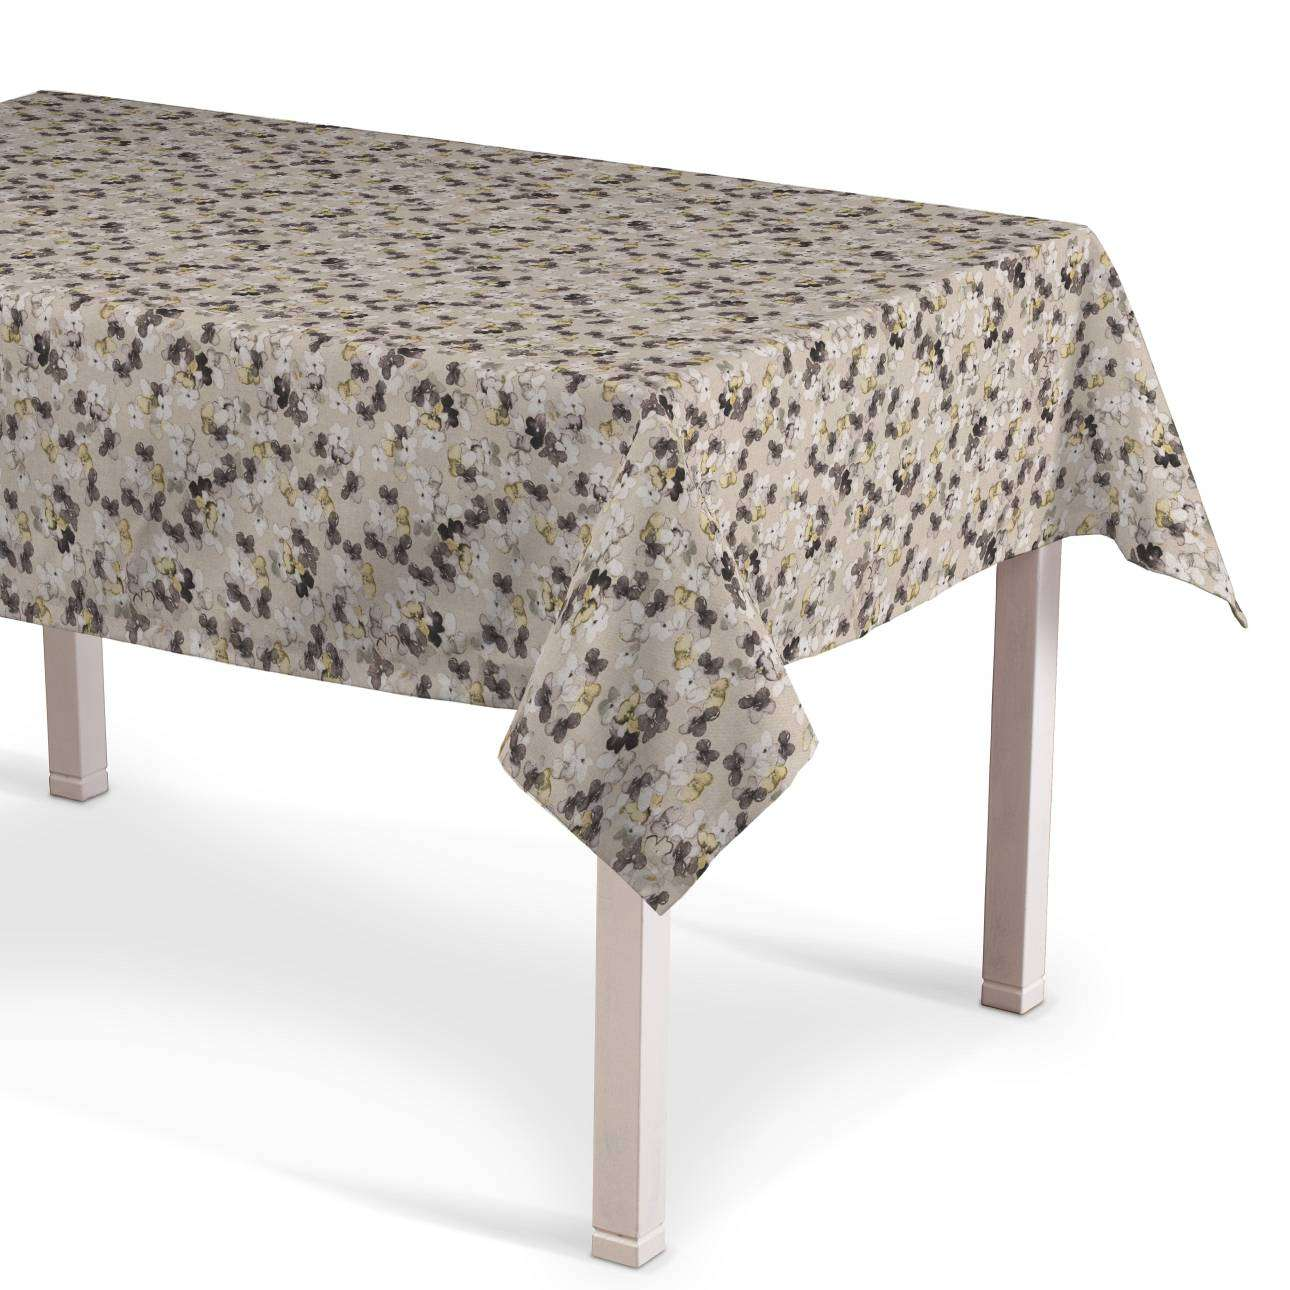 Rectangular tablecloth in collection Londres, fabric: 140-48